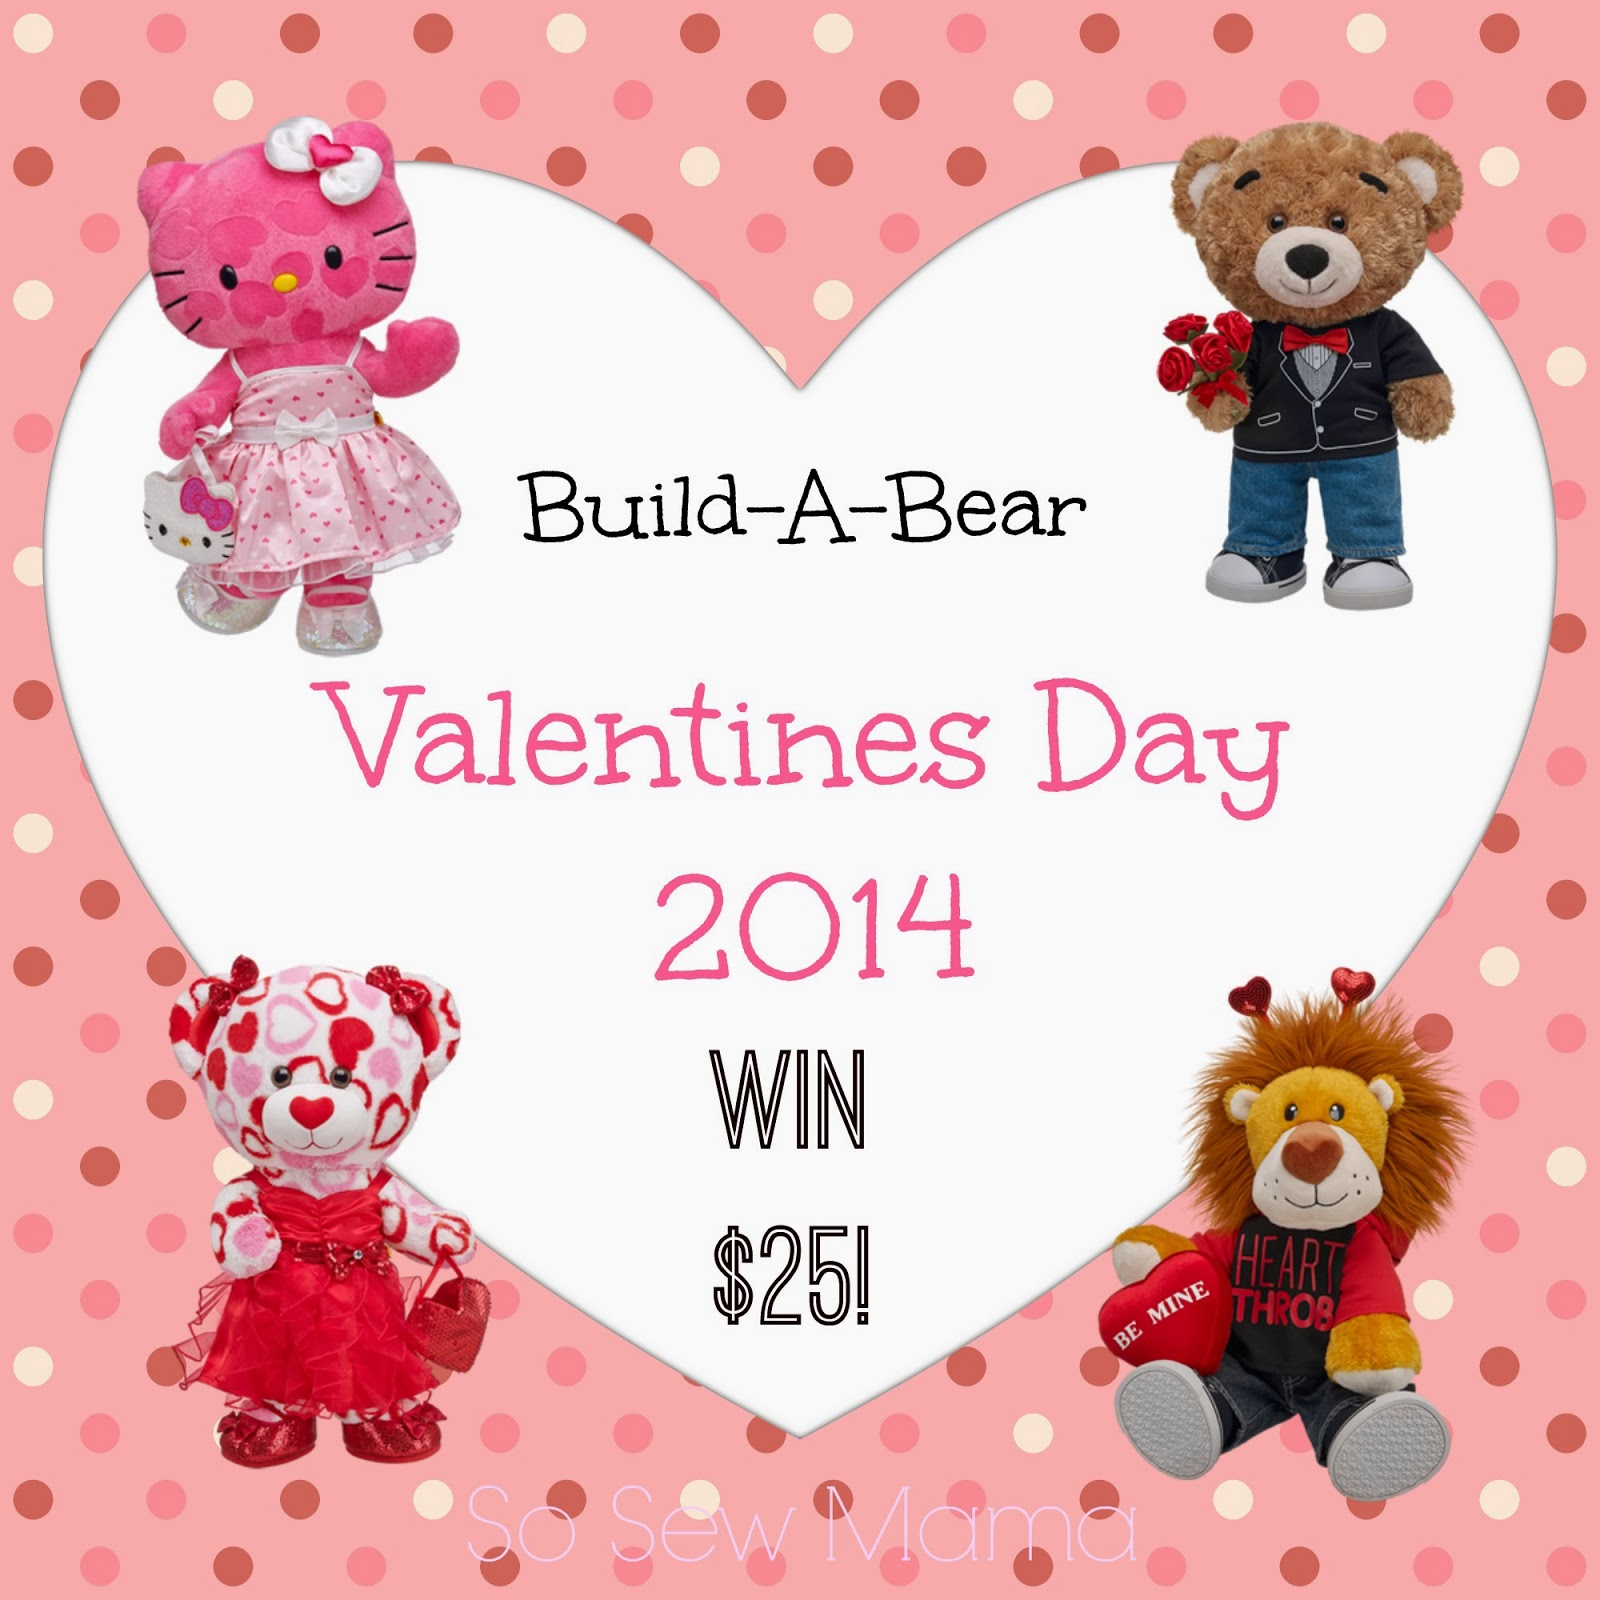 Build-A-Bear Giveaway